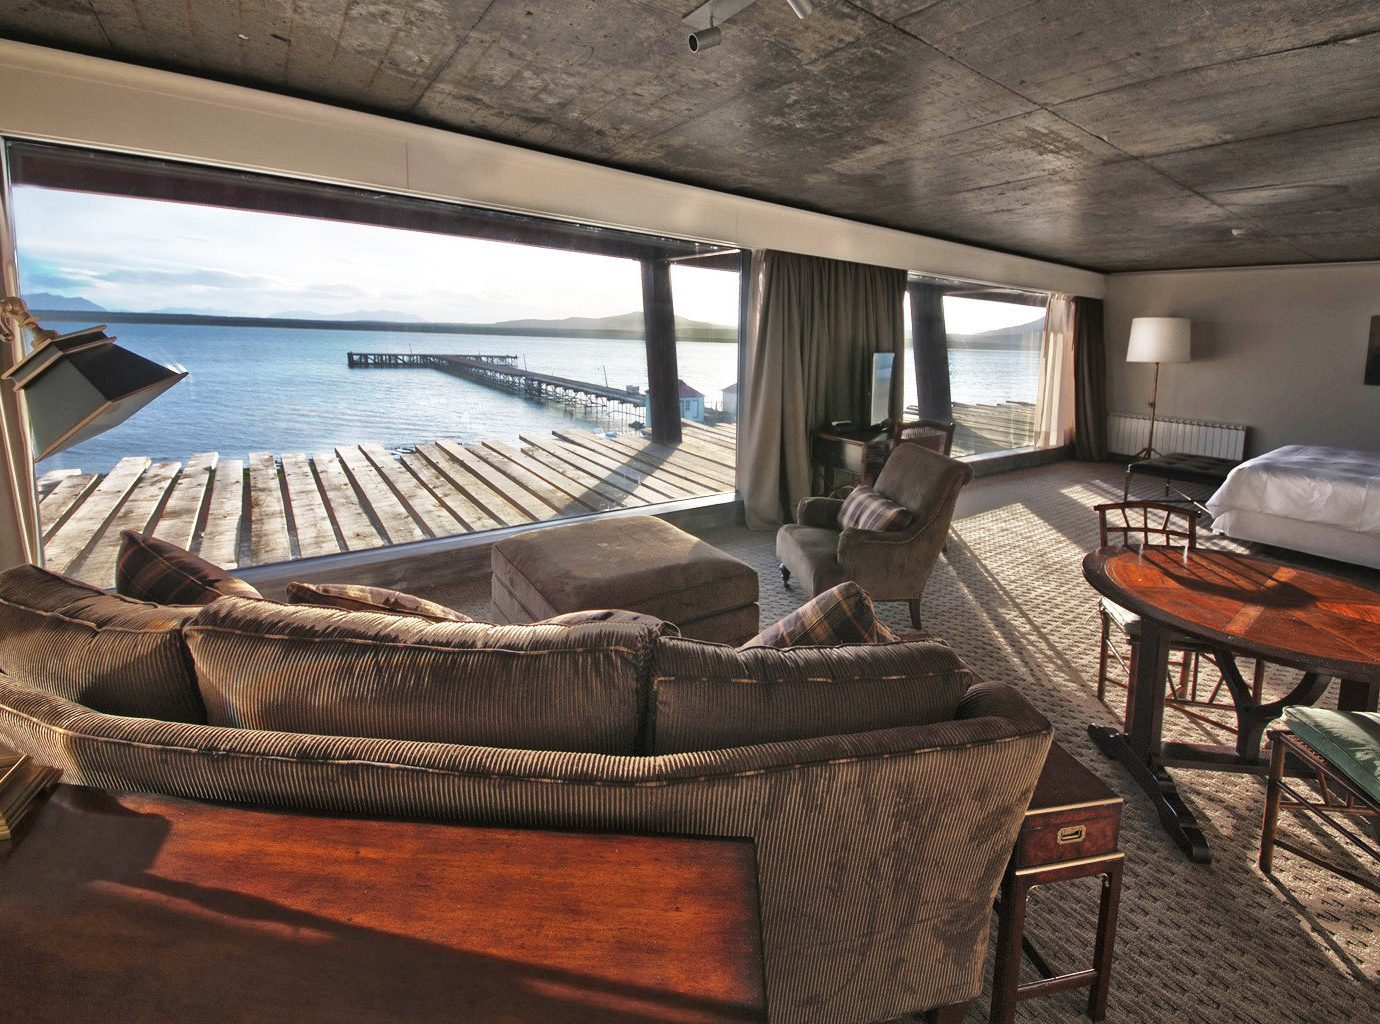 Beachfront Bedroom Deck Hotels Luxury Patio Scenic views Suite Waterfront floor indoor ceiling room property vehicle Boat passenger ship yacht estate home interior design cottage real estate living room luxury yacht ship Villa watercraft furniture several